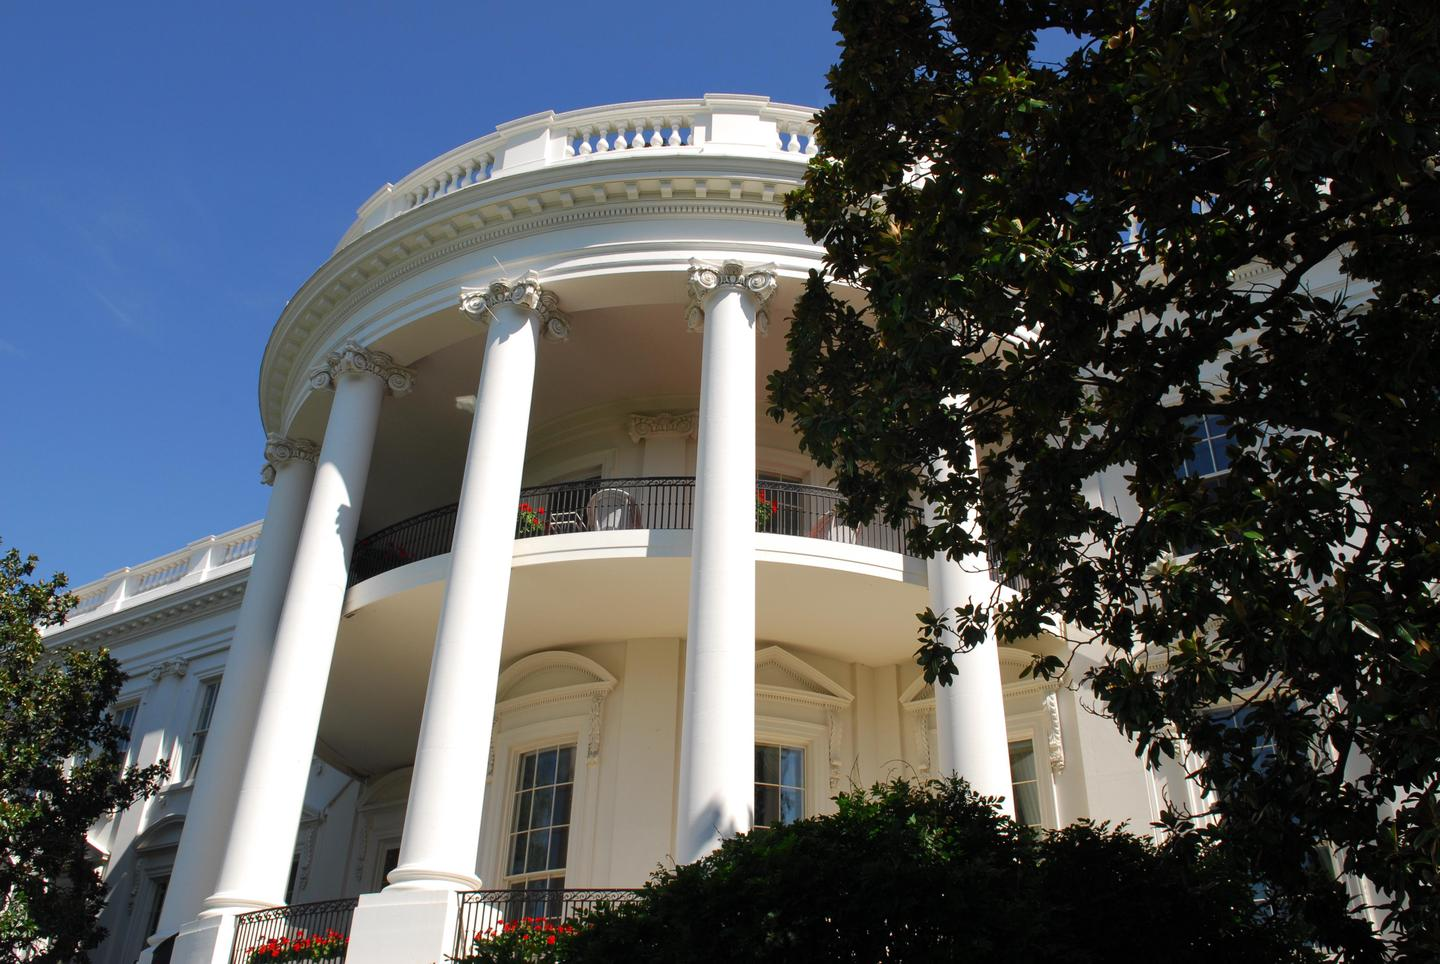 White HouseBritish forces set fire to the original home of the U.S. president on August 26, 1814.